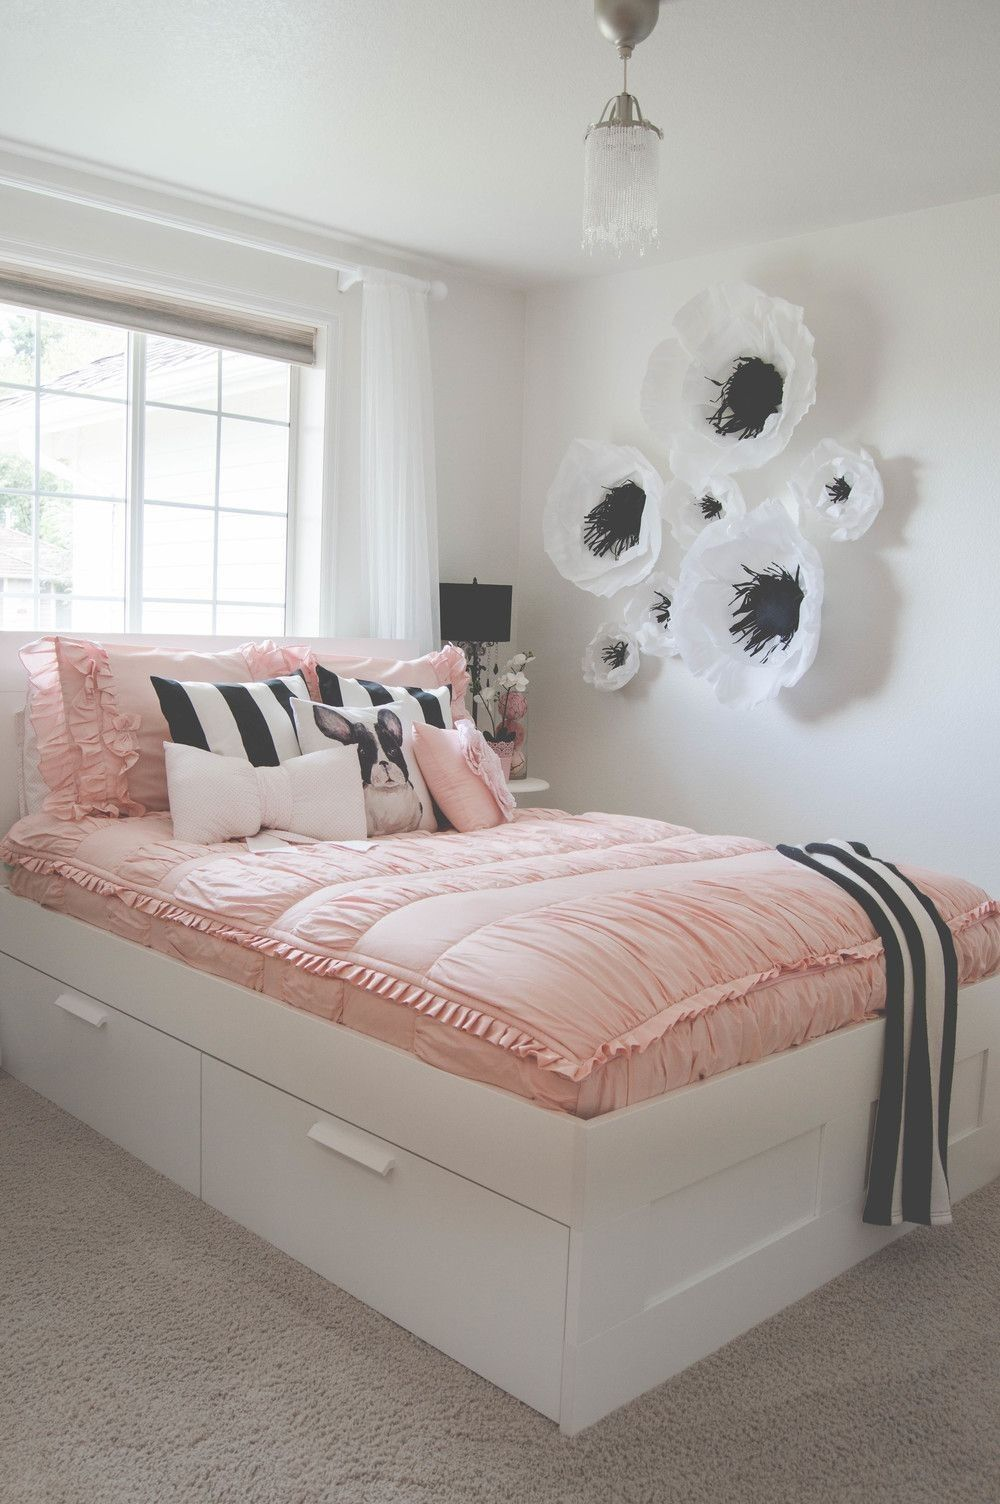 Pin by Chelsi Cremer on House | Girls bedroom makeover ...